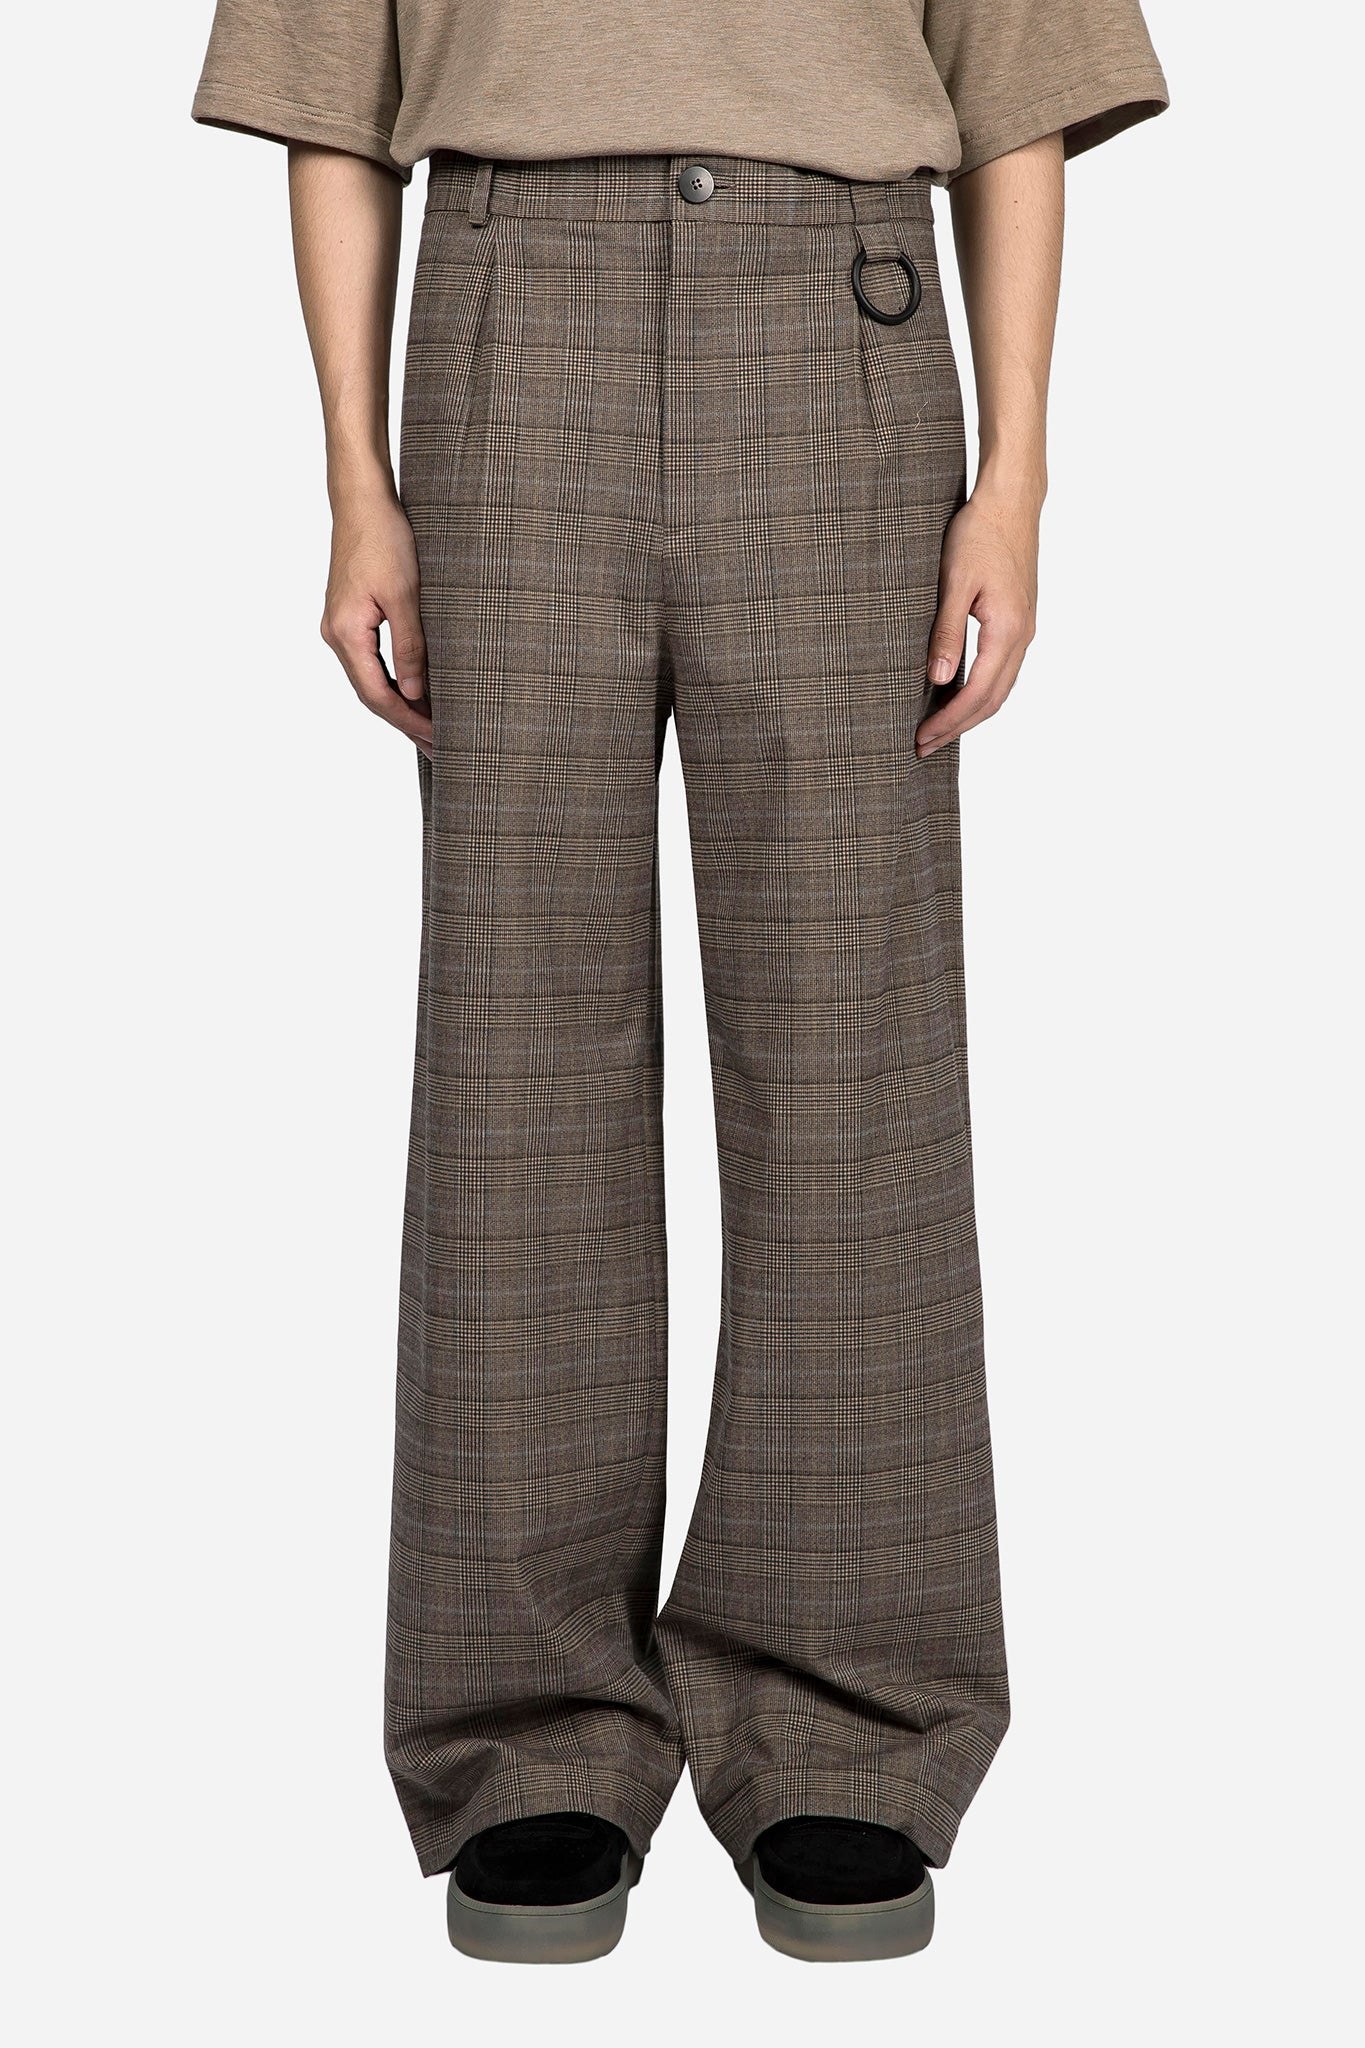 Dobby Straight Trouser Light Brown Cloud Grid